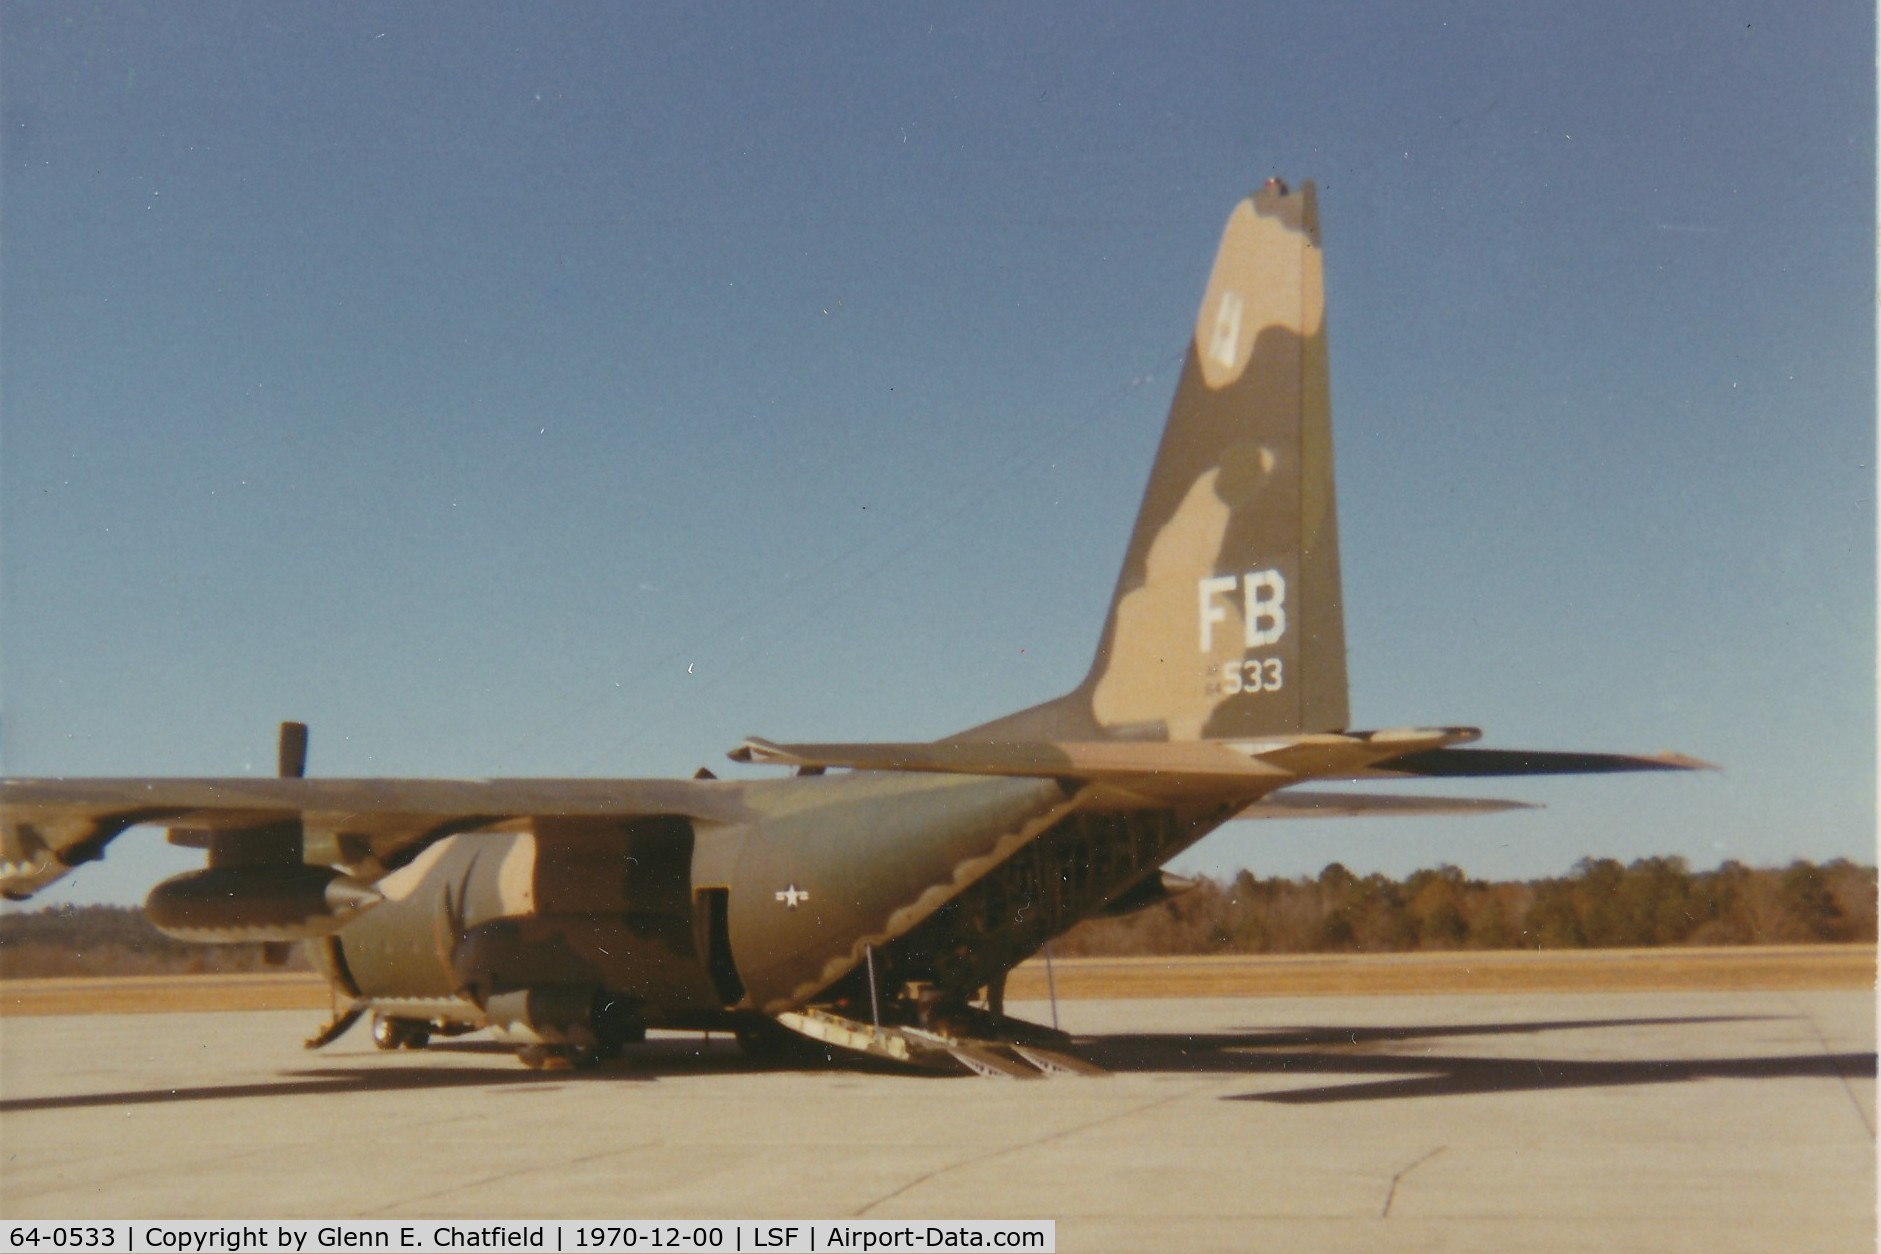 64-0533, 1964 Lockheed C-130E-LM Hercules C/N 382-4022, On the ramp at Lawson Army Airfield, for loading paratroopers in jump school